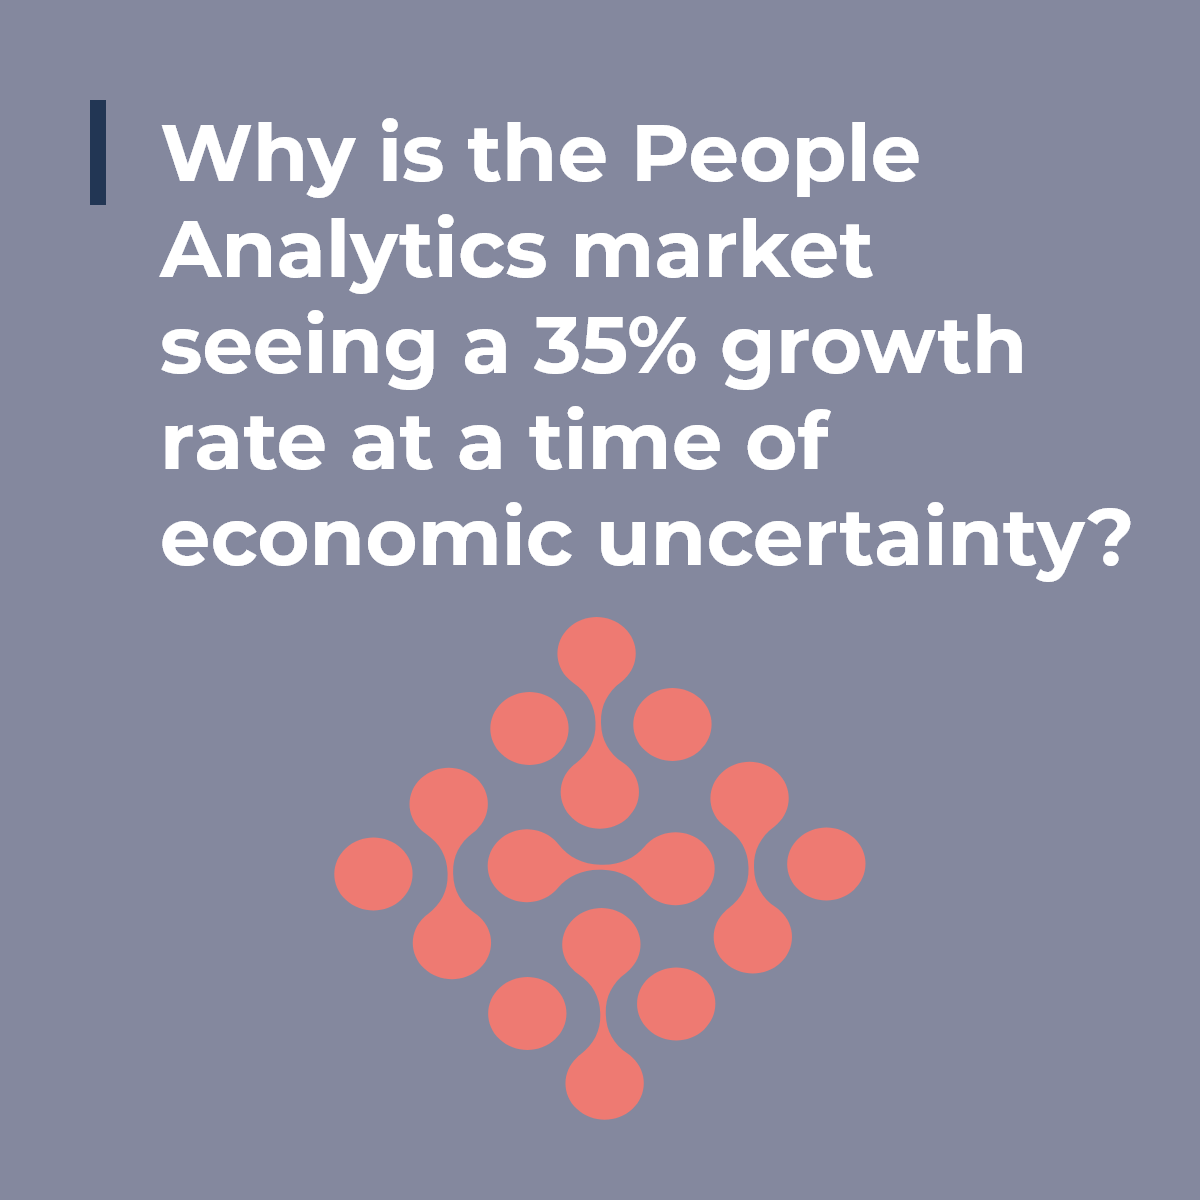 Why is the People Analytics market seeing a 35% growth rate at a time of economic uncertainty?